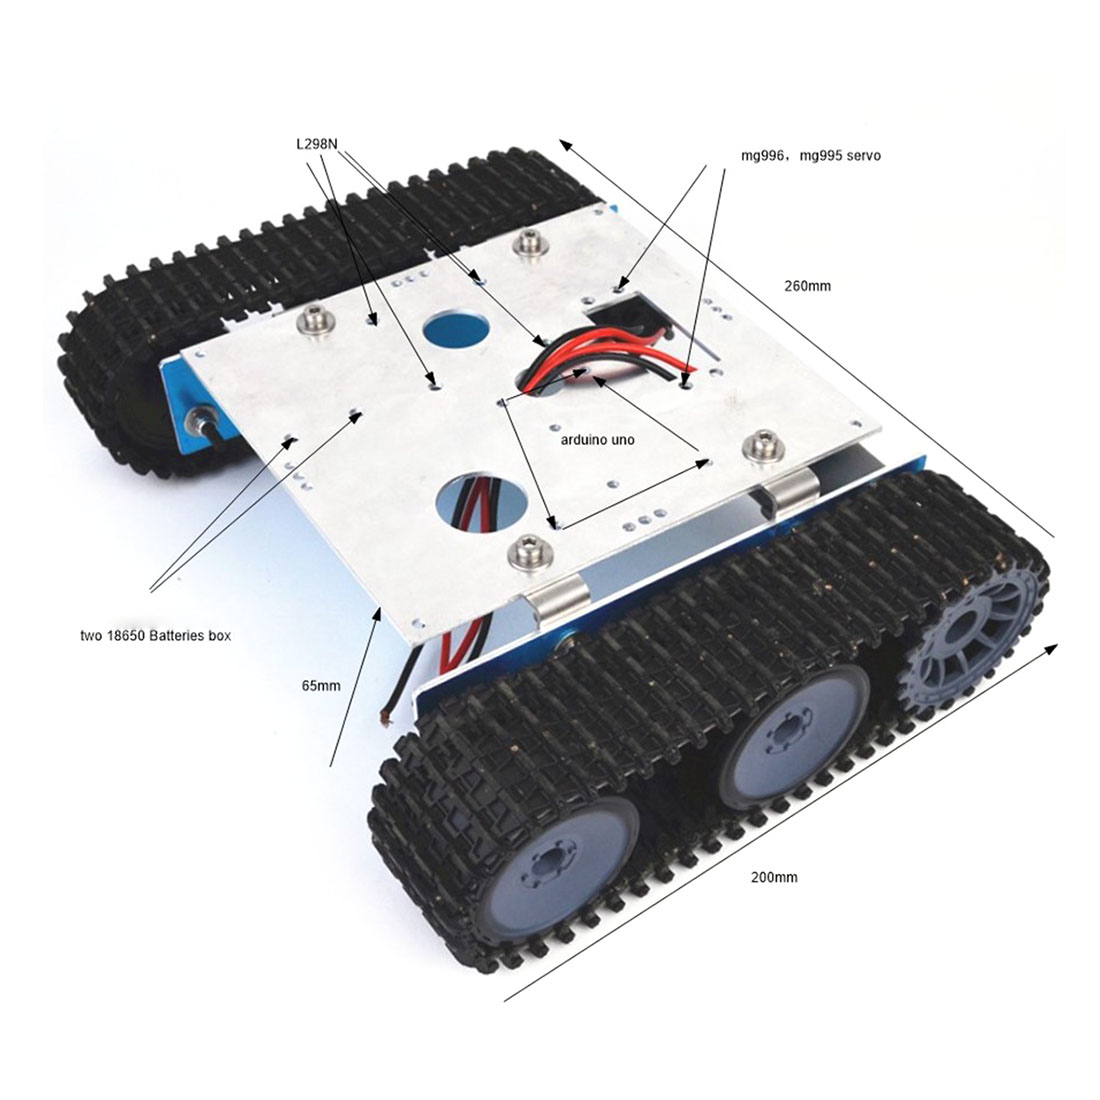 Drop Shipping DIY Aluminium Alloy Tank Robot Caterpillar Vehicle Platform Chassis Assembly Kit For Arduino Kids Birthdaty Gifts